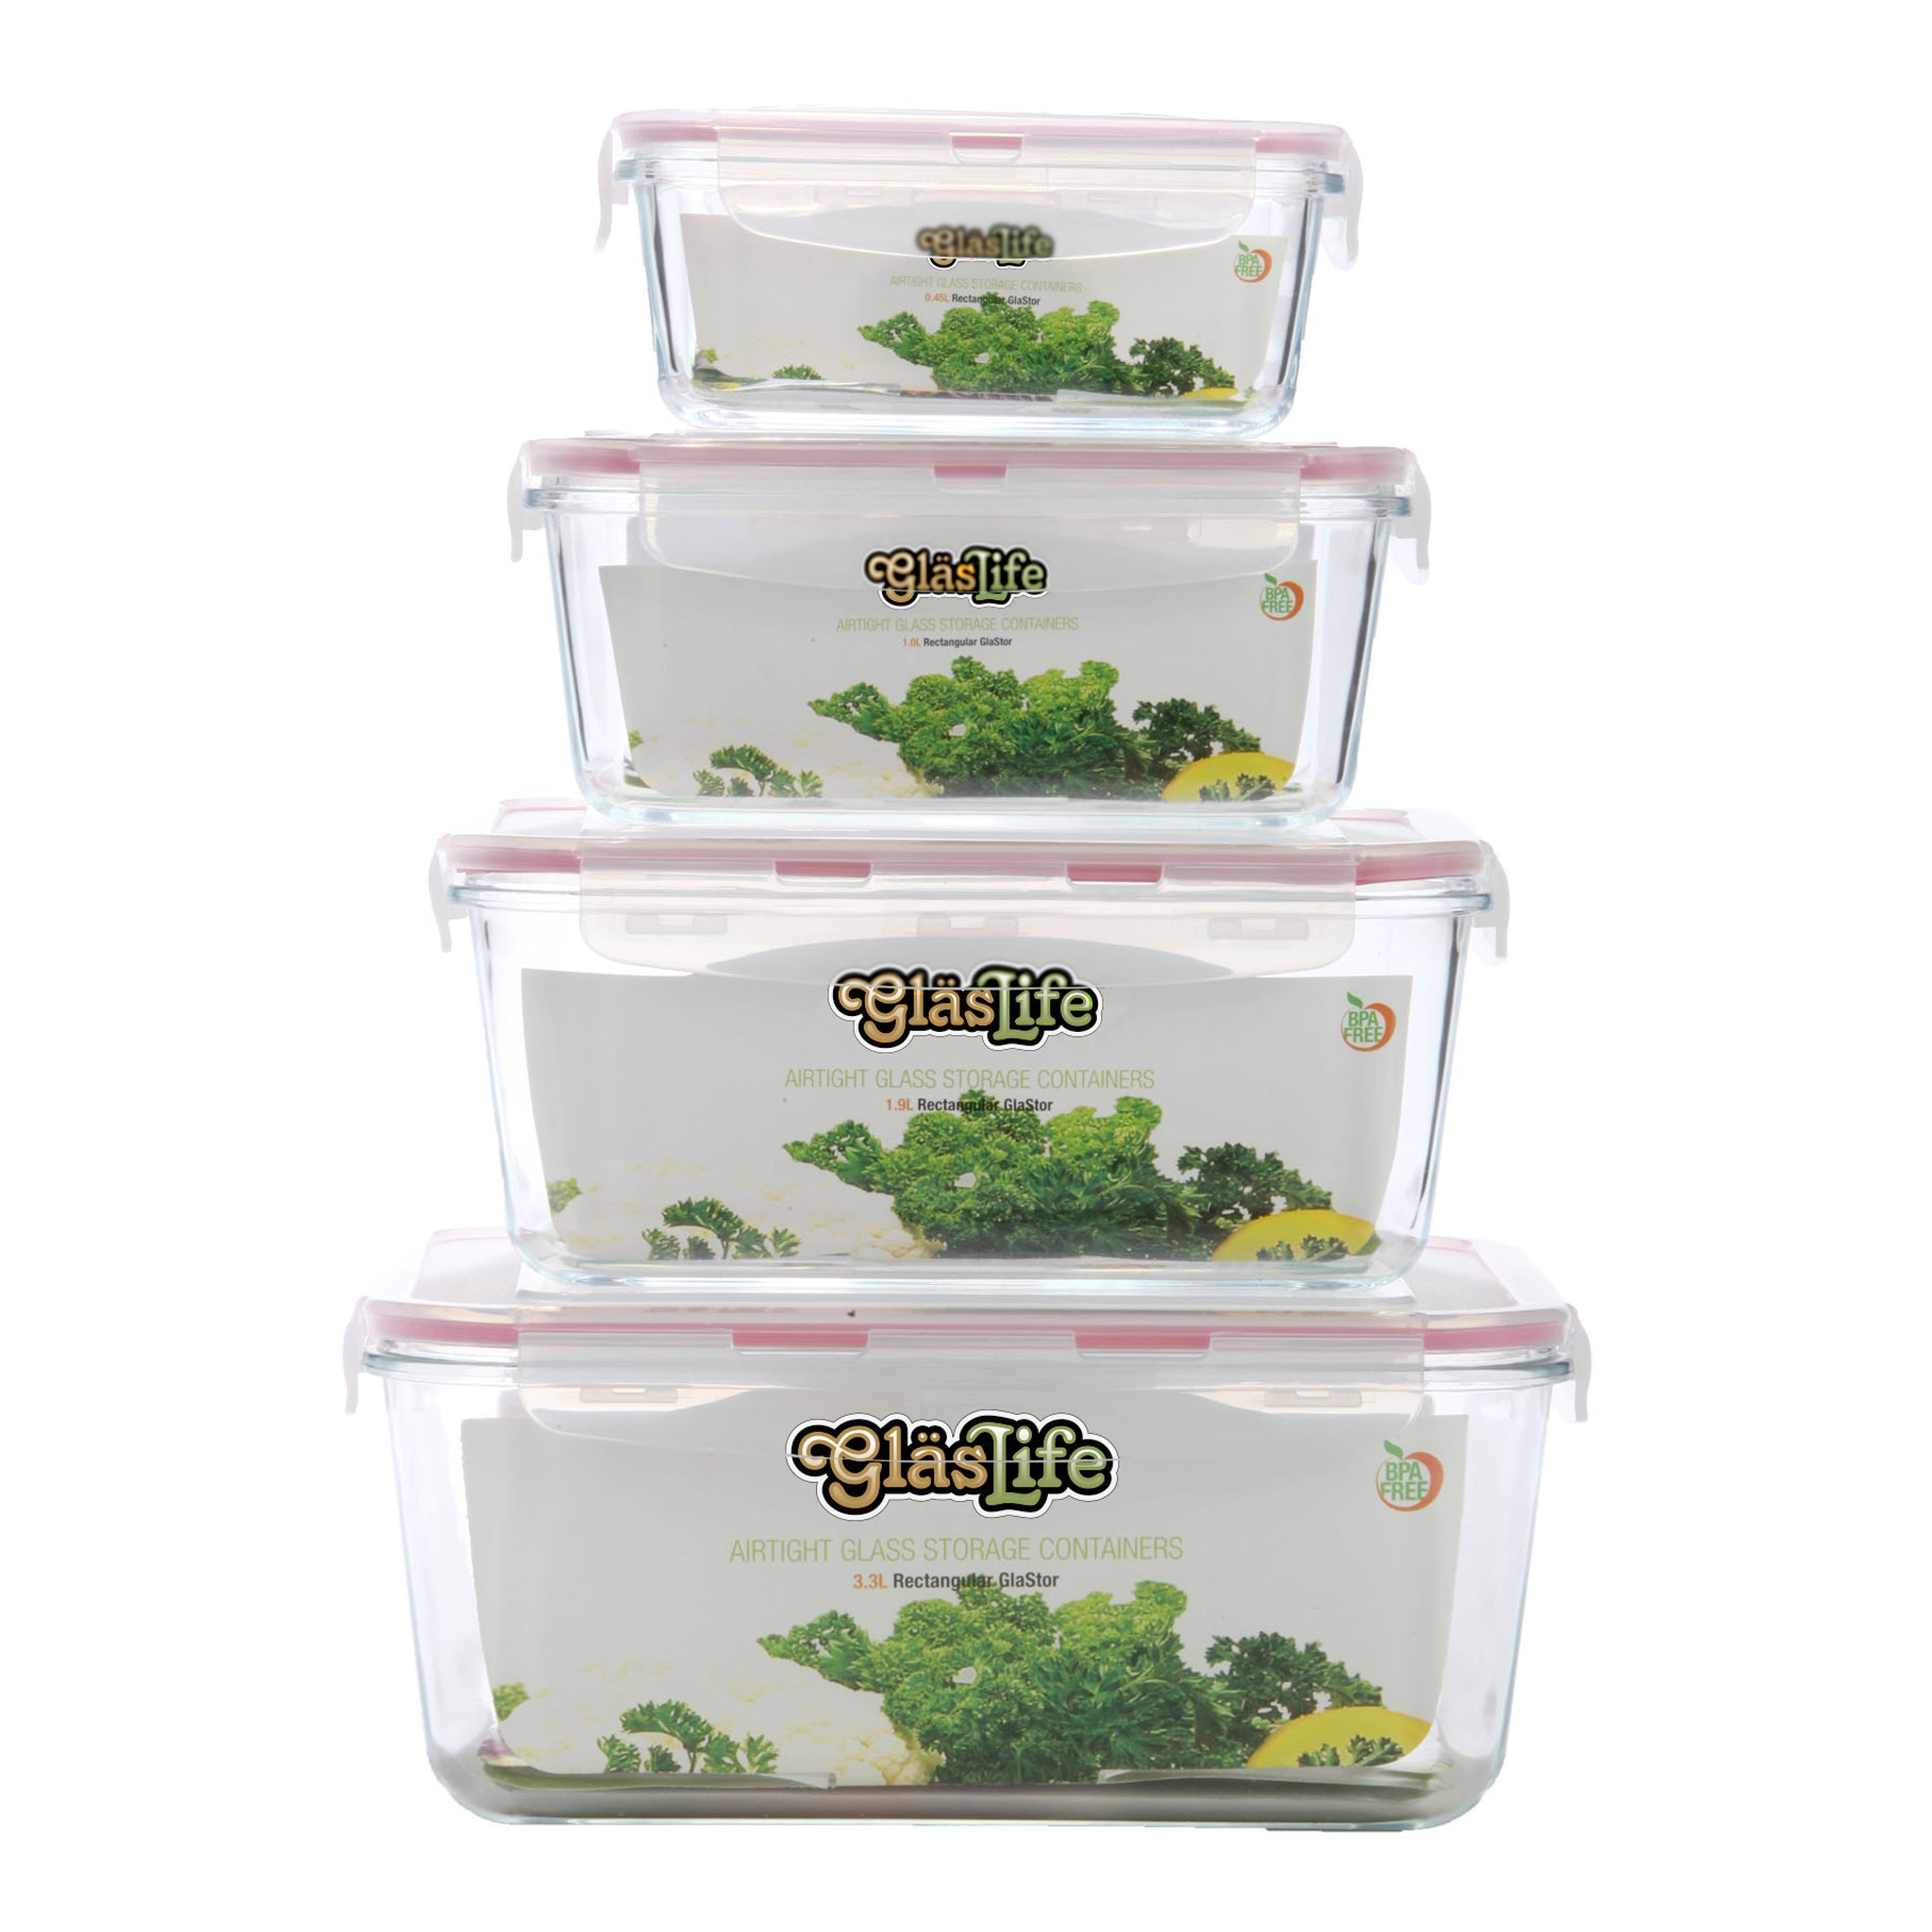 GlasLife® Air-Tight Glass Storage Container - Rectangular GLR04SN 4-Piece Set